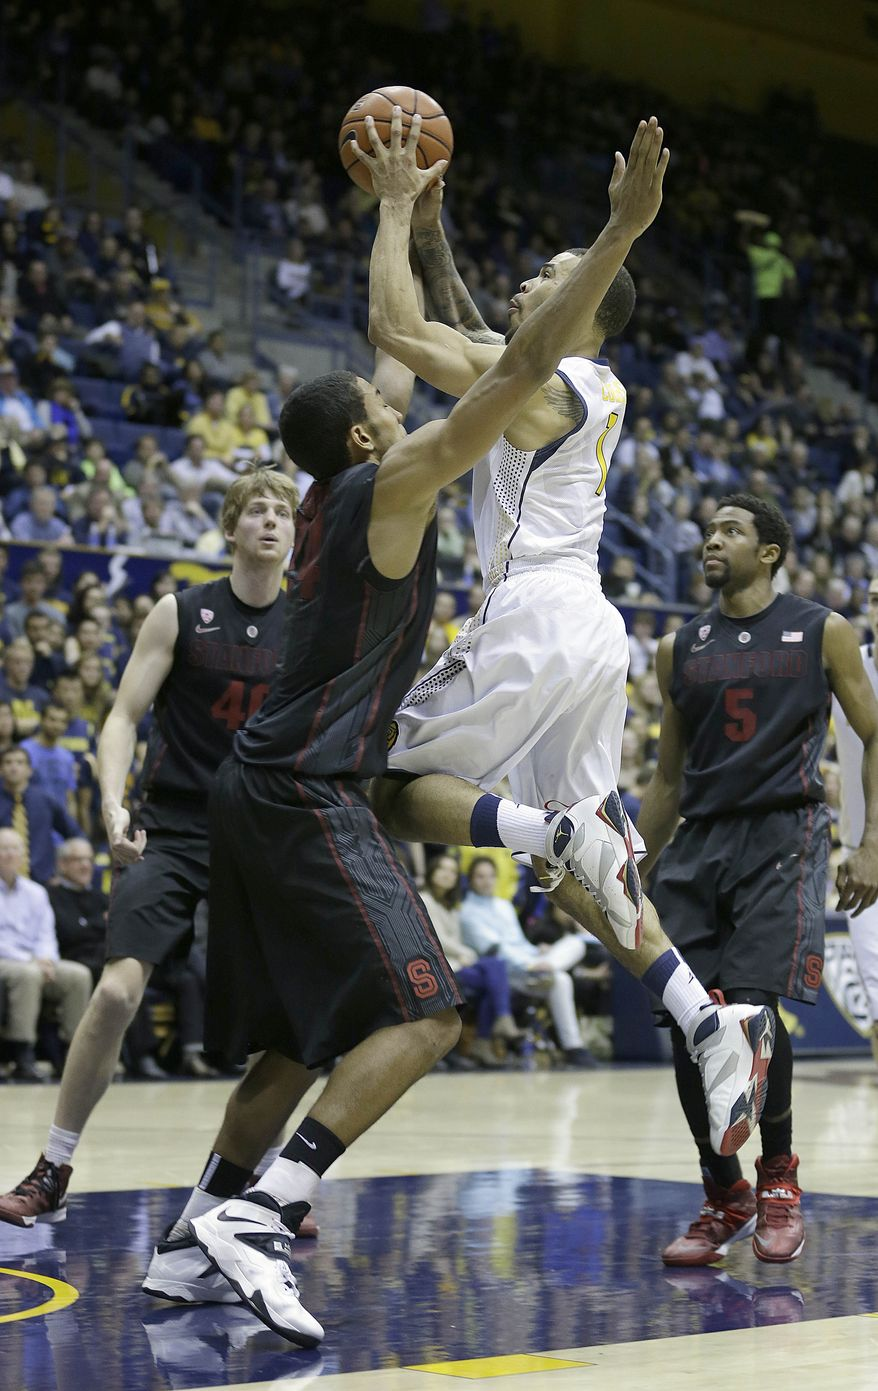 California guard Justin Cobbs (1) goes to the basket as Stanford forward Josh Huestis (24) defends during the second half of an NCAA college basketball game, Wednesday, Feb. 5, 2014, in Berkeley, Calif. Stanford won 80-69. (AP Photo/Tony Avelar)